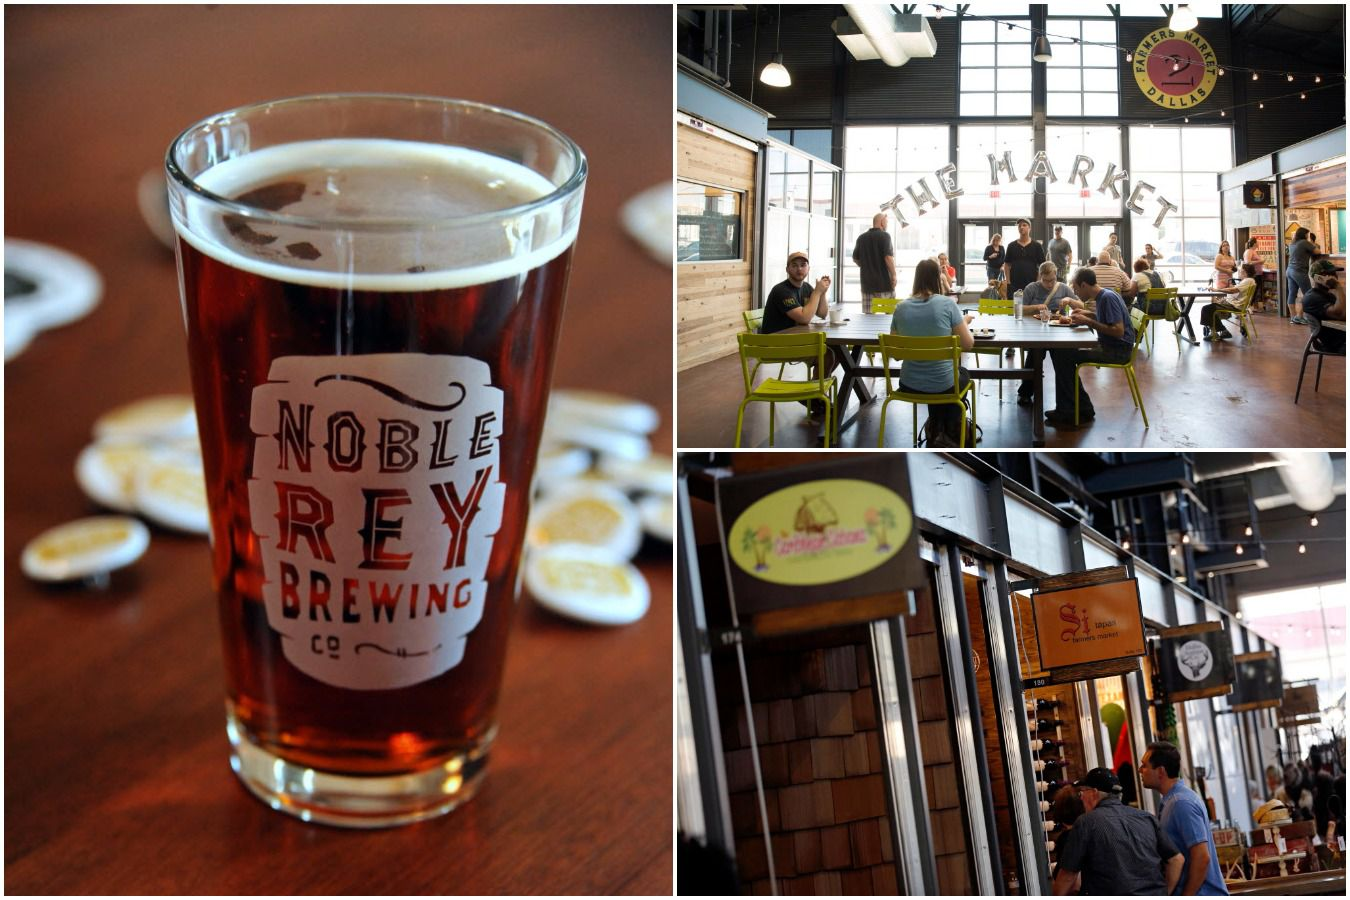 Noble Rey Brewing Co. is expected to open a second taproom inside the Dallas Farmers Market's revamped food hall, the Market, this summer.